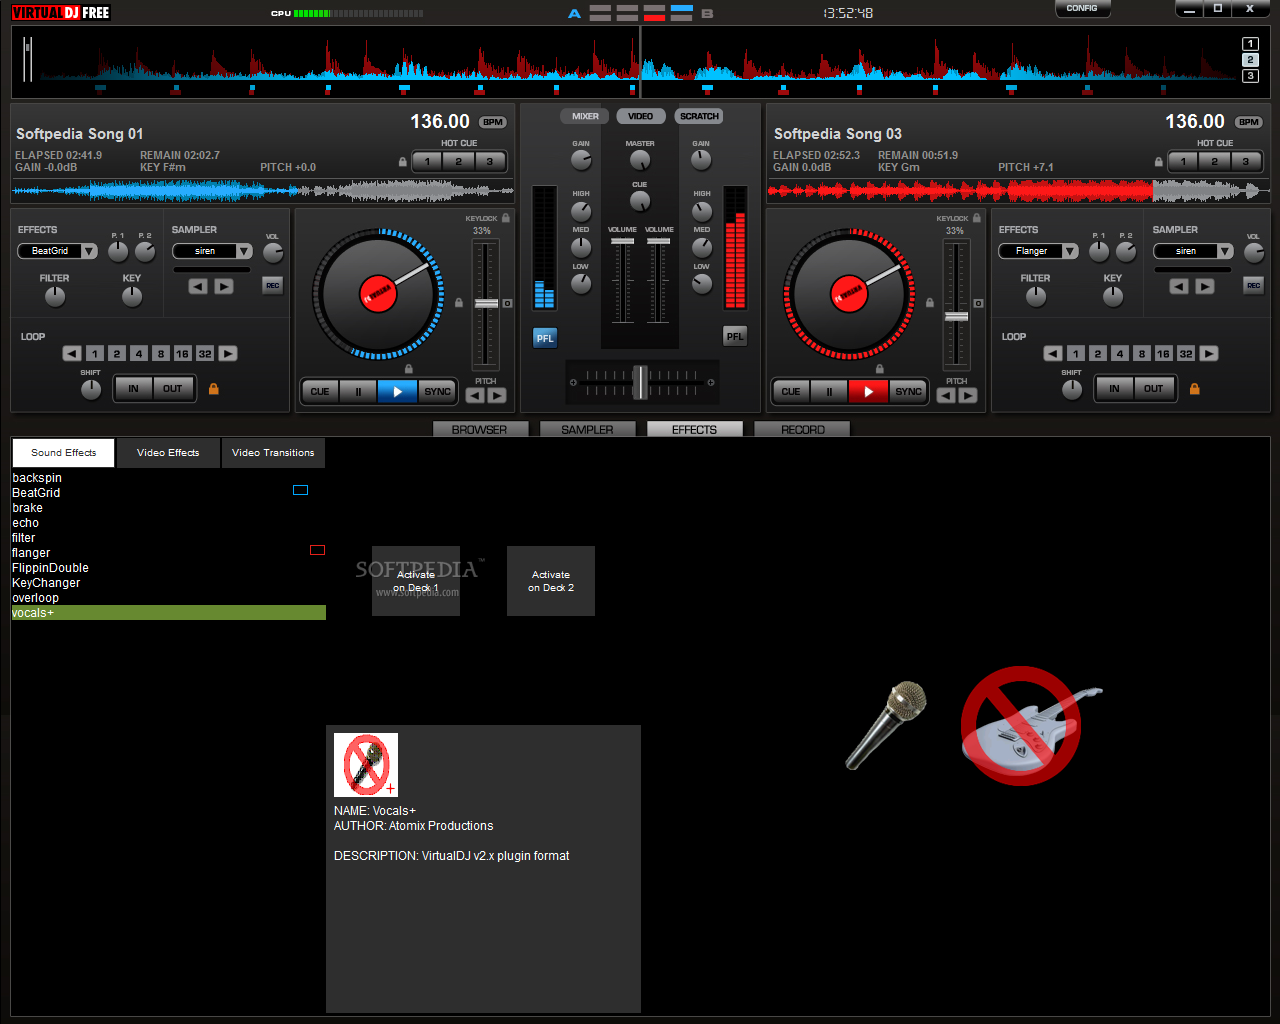 Download now Virtual DJ pro onlycrack. Tested and working.